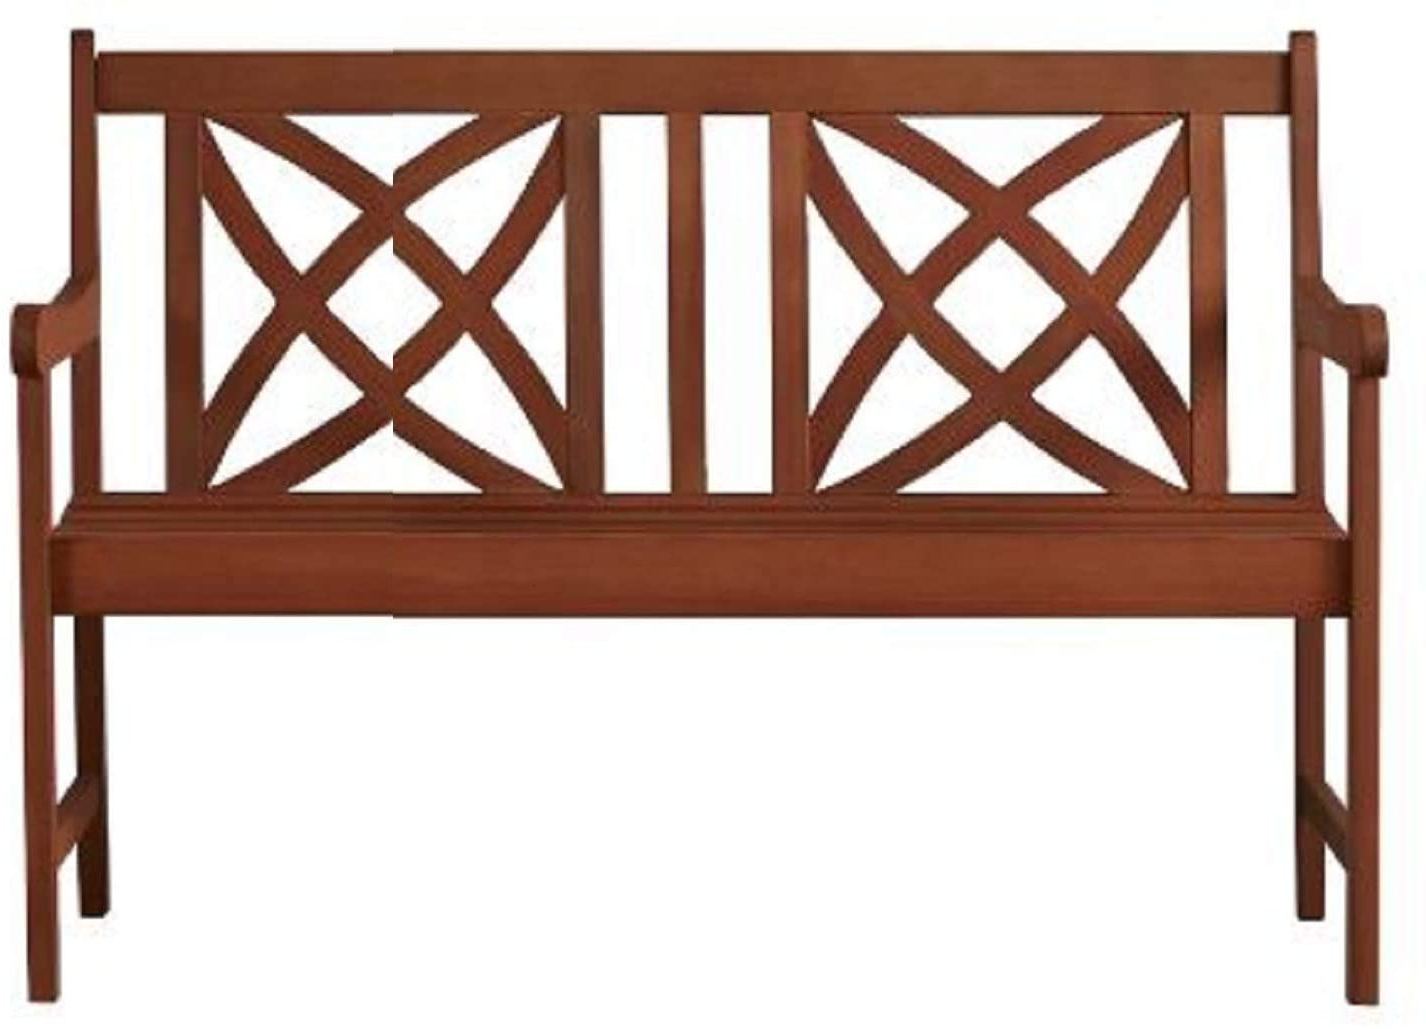 Most Recent Maliyah Wooden Garden Benches Pertaining To Outdoor Garden Metal Bench (View 5 of 30)